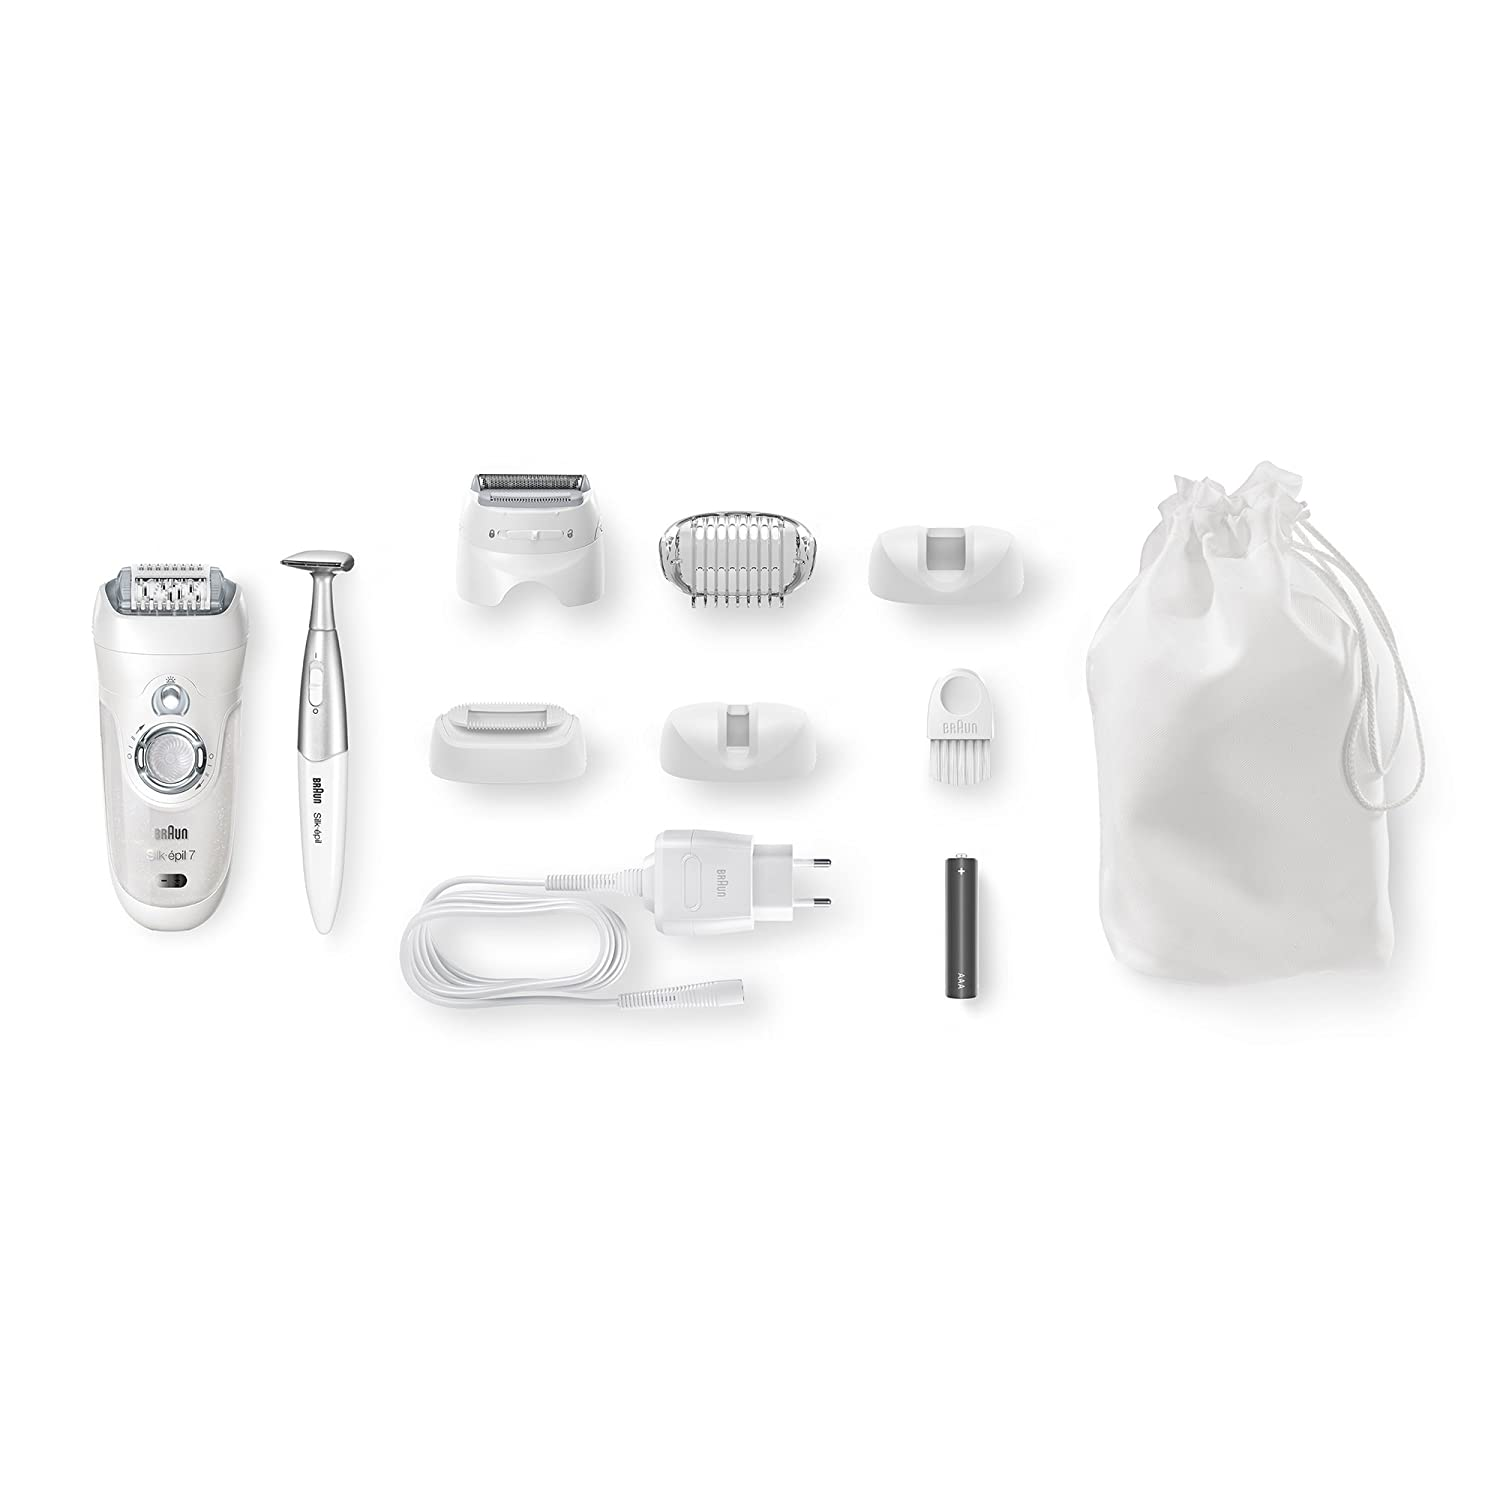 Braun Women s Epilator, Silk- pil 7 7-561 Electric Hair Removal, Wet Dry, Shaver with Bikini Trimmer Packaging May Vary